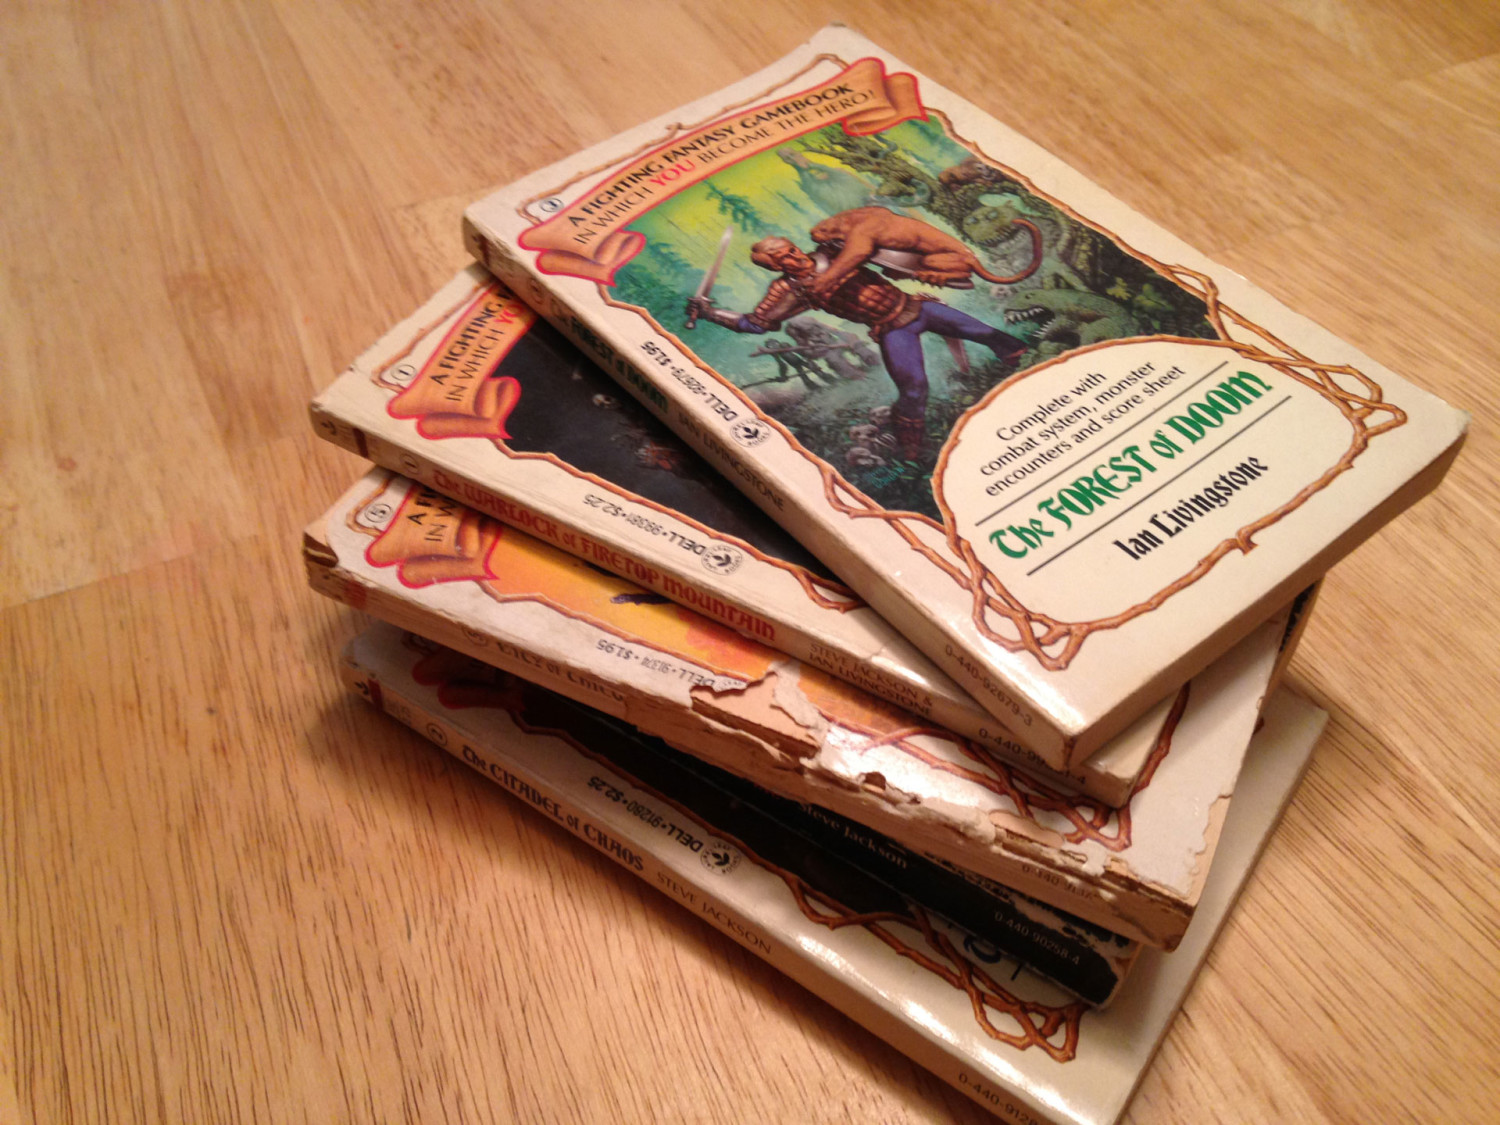 A stack of worn FIghting Fantasy books